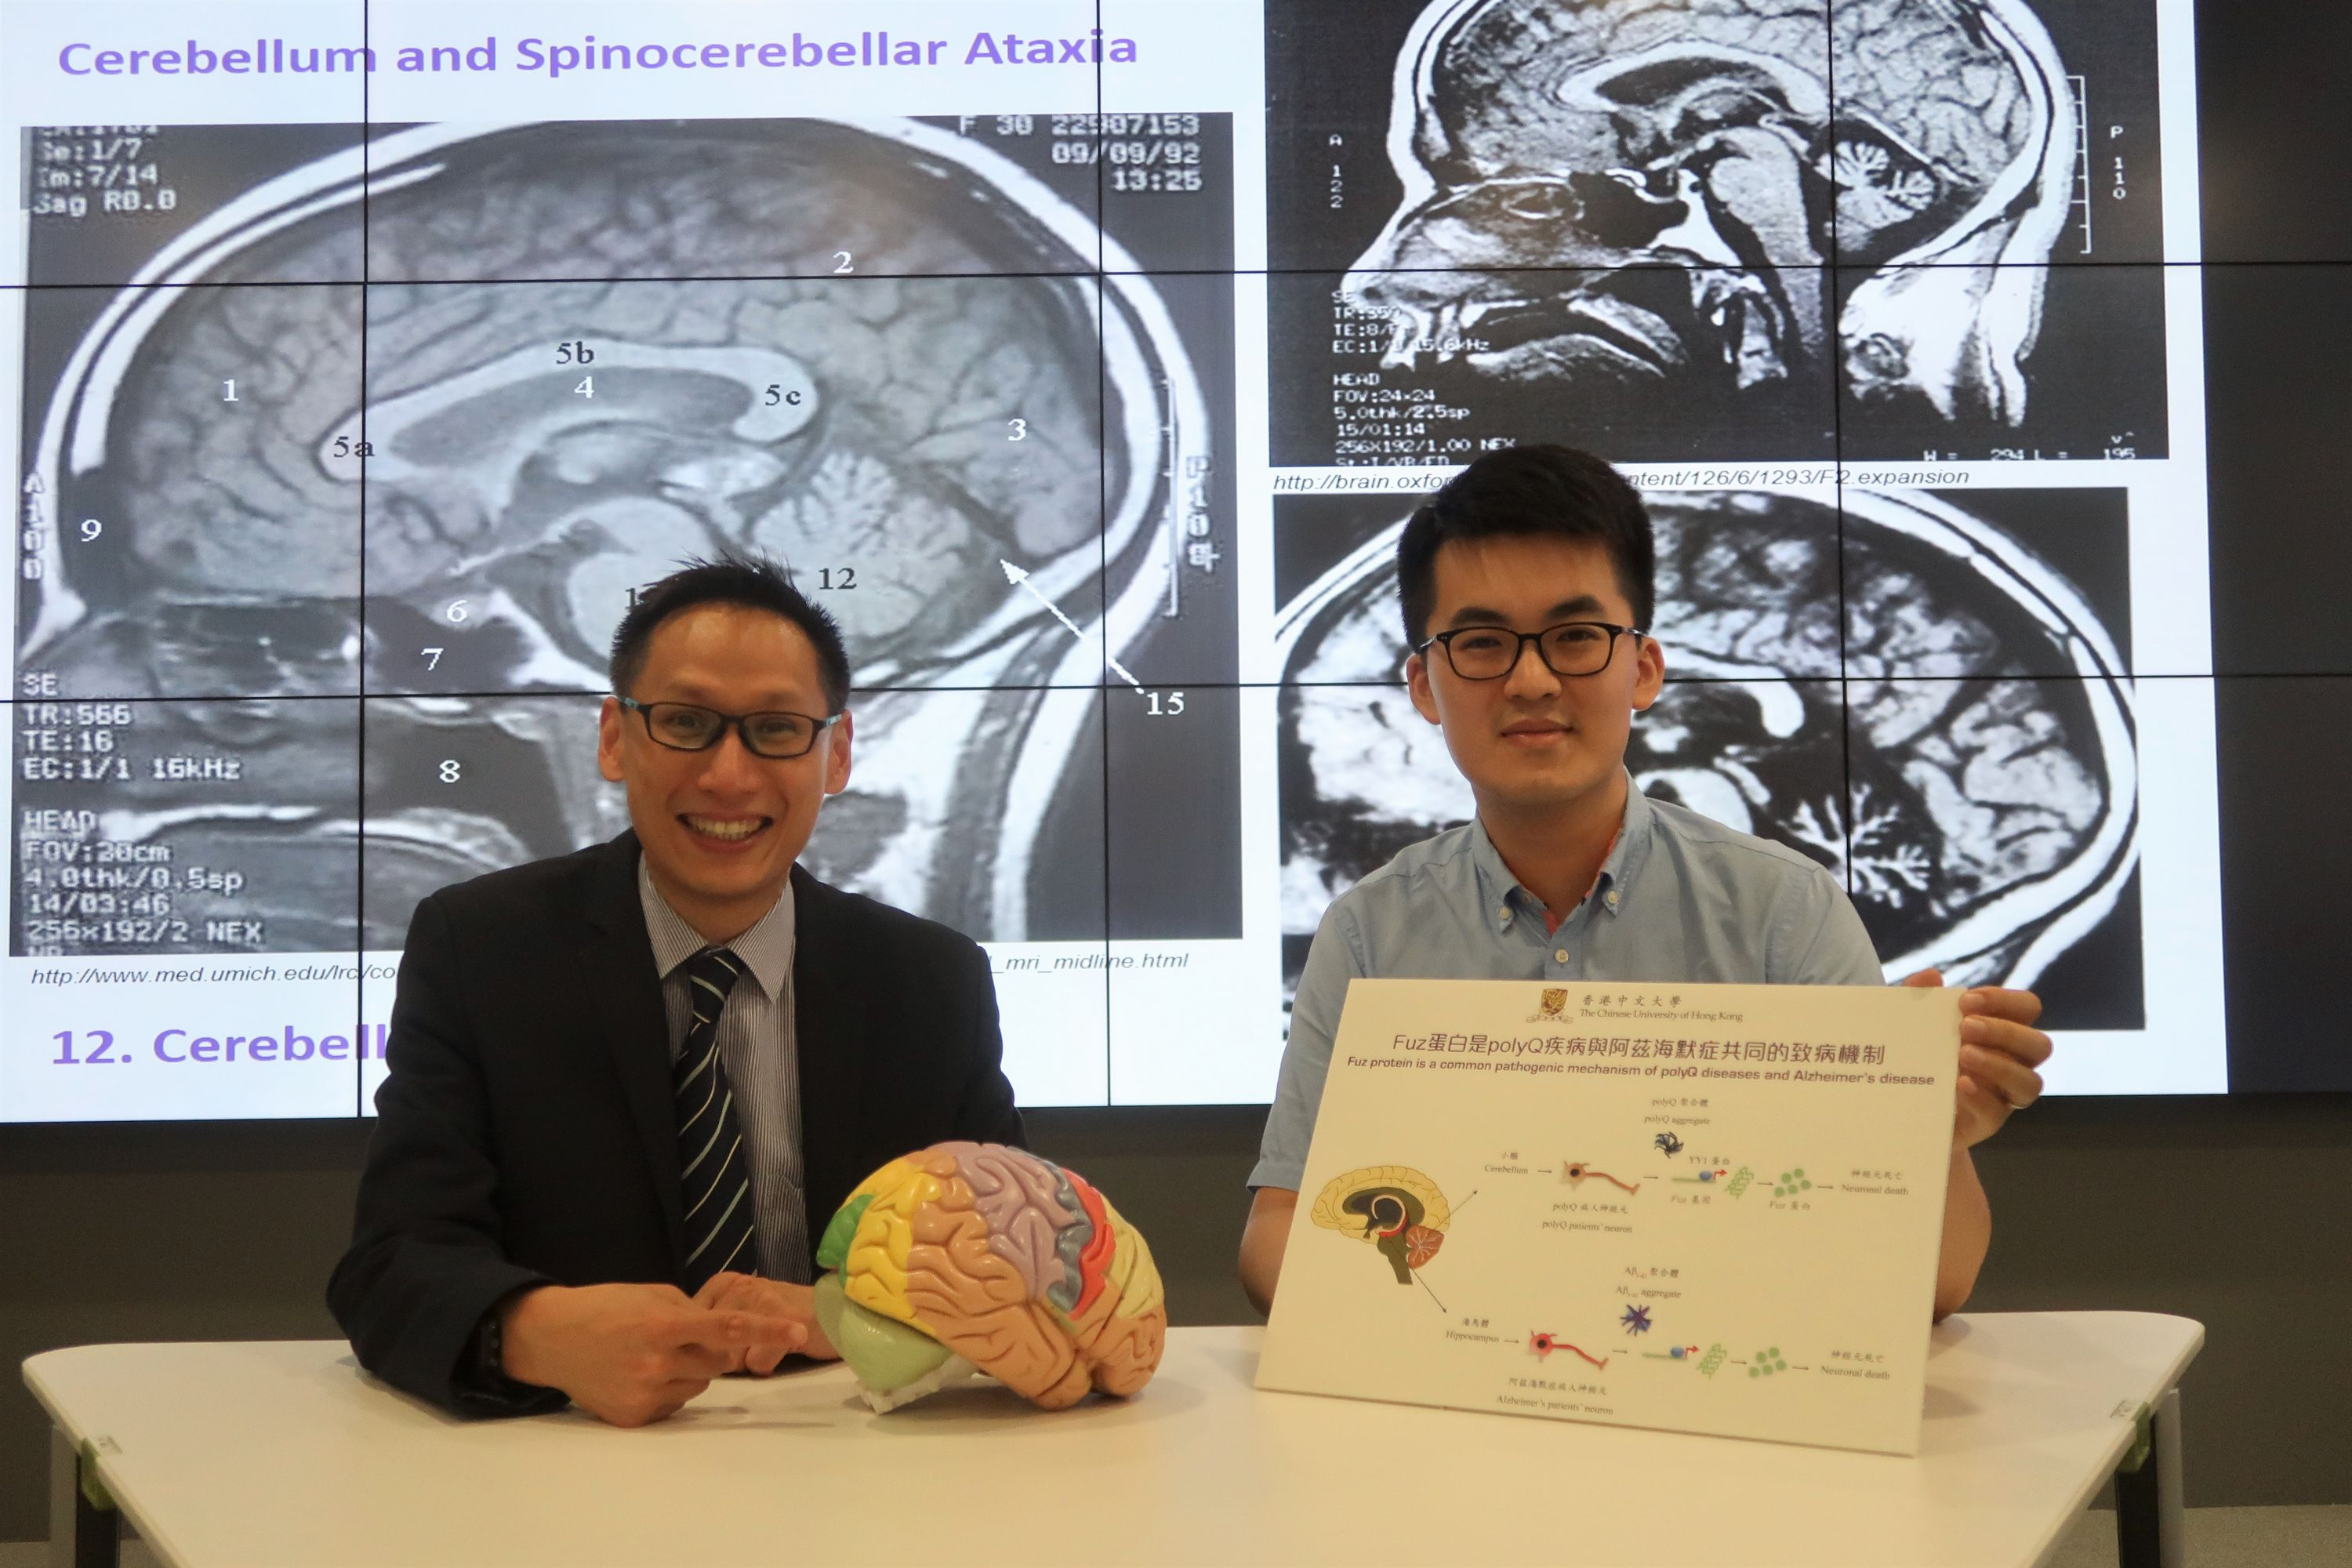 Professor Edwin Chan (left) and Dr Stephen Chen of CUHK School of Life Sciences point out that overexpressed Fuz also presents in common neurodegenerative diseases such as Alzheimer's disease